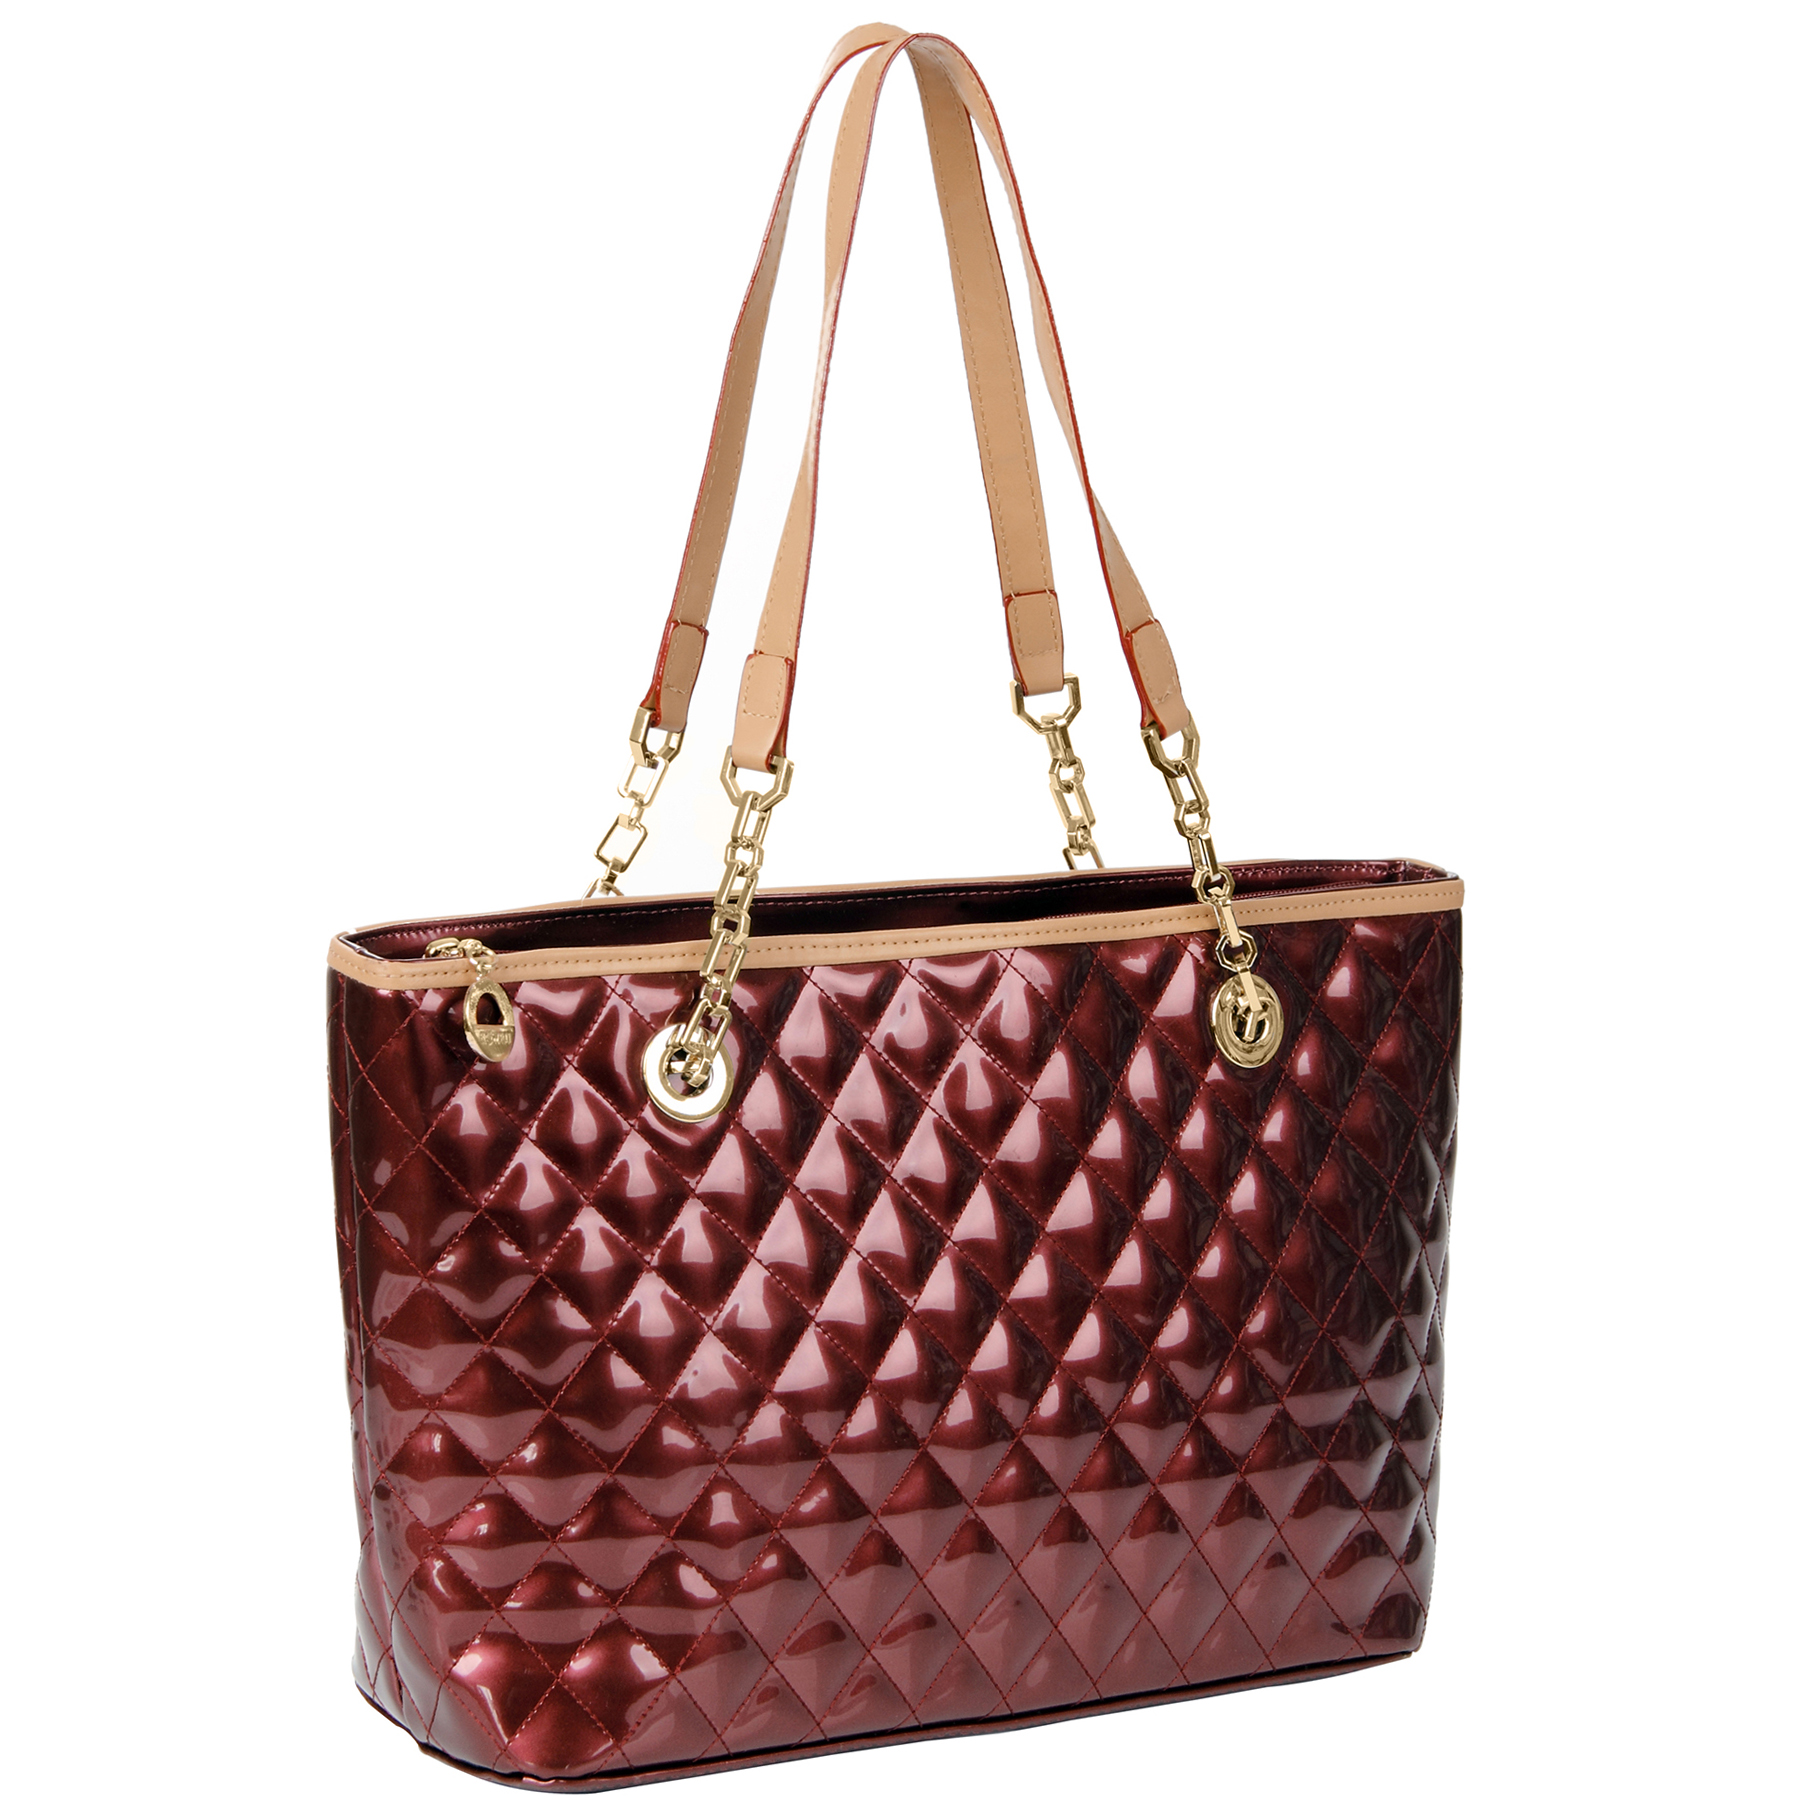 LERYN red quilted faux patent leather shoulder bag tote main image